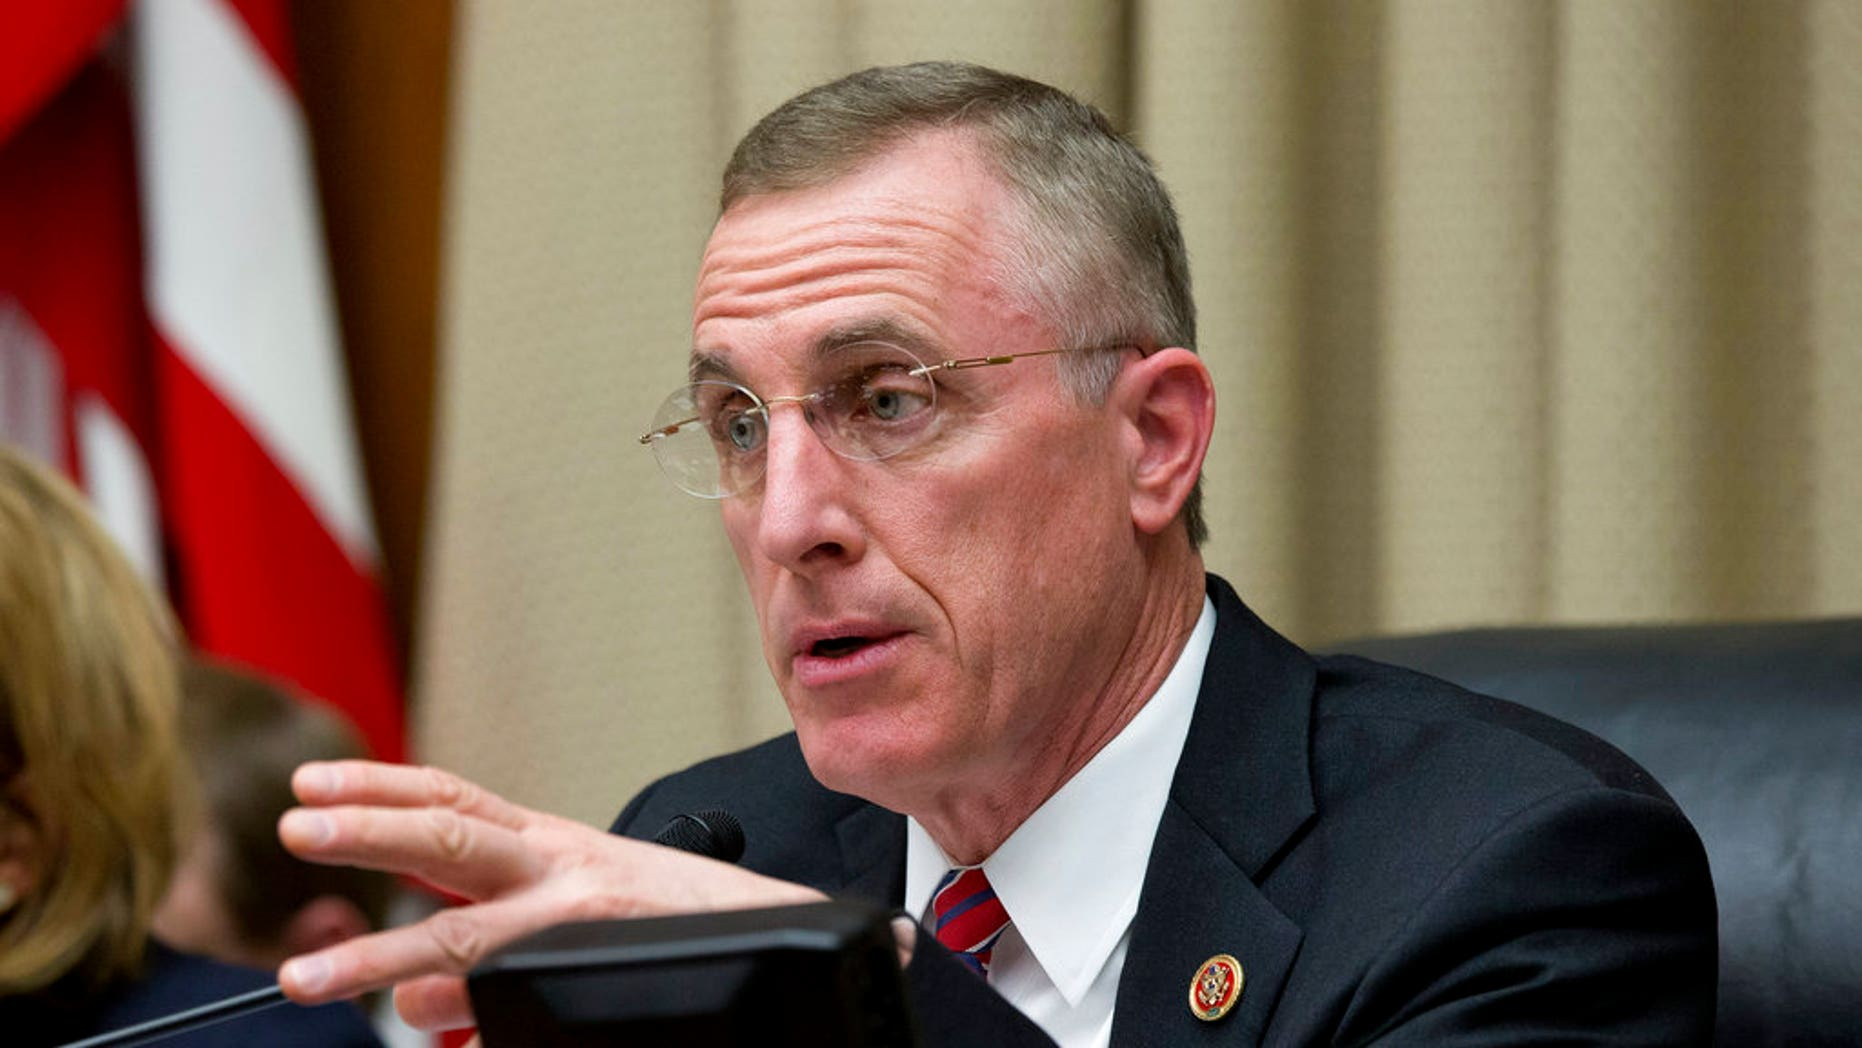 Pennsylvania GOP Rep. Tim Murphy has resigned from Congress amid revelations of an extramarital affair where he reportedly asked his mistress to get an abortion.